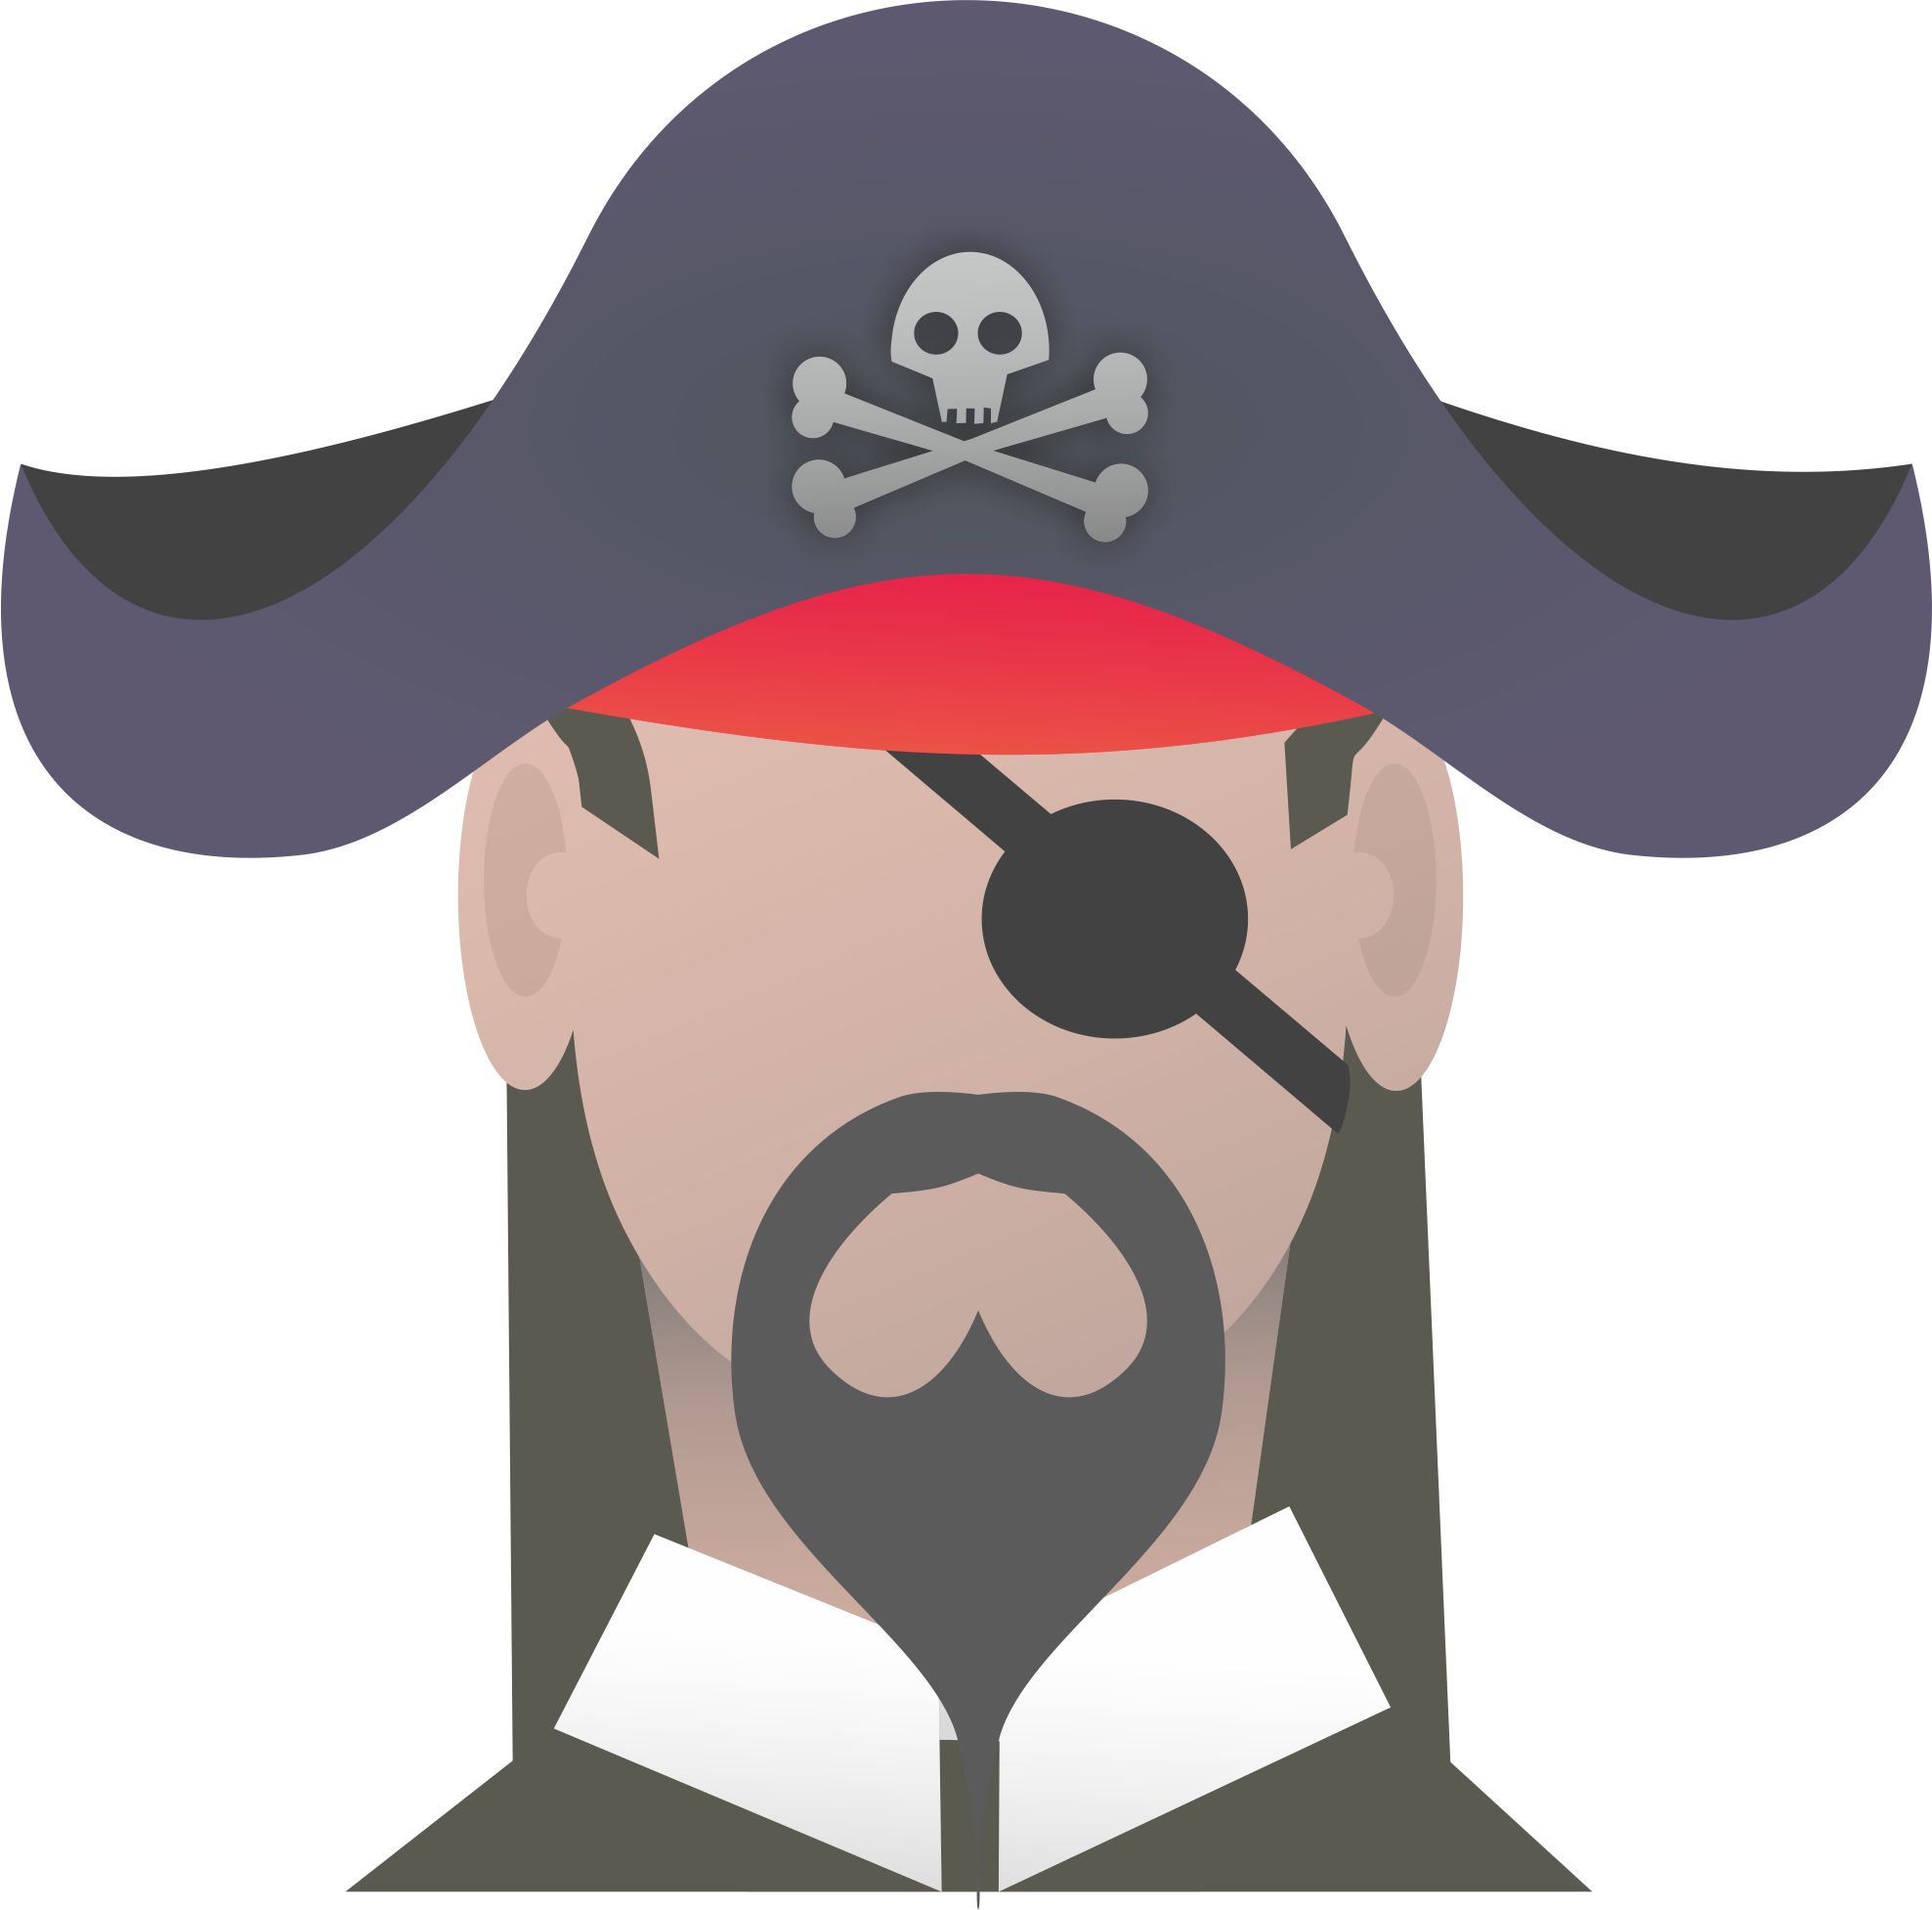 Moustache clipart pirate accessory. Symbols hwfp if your